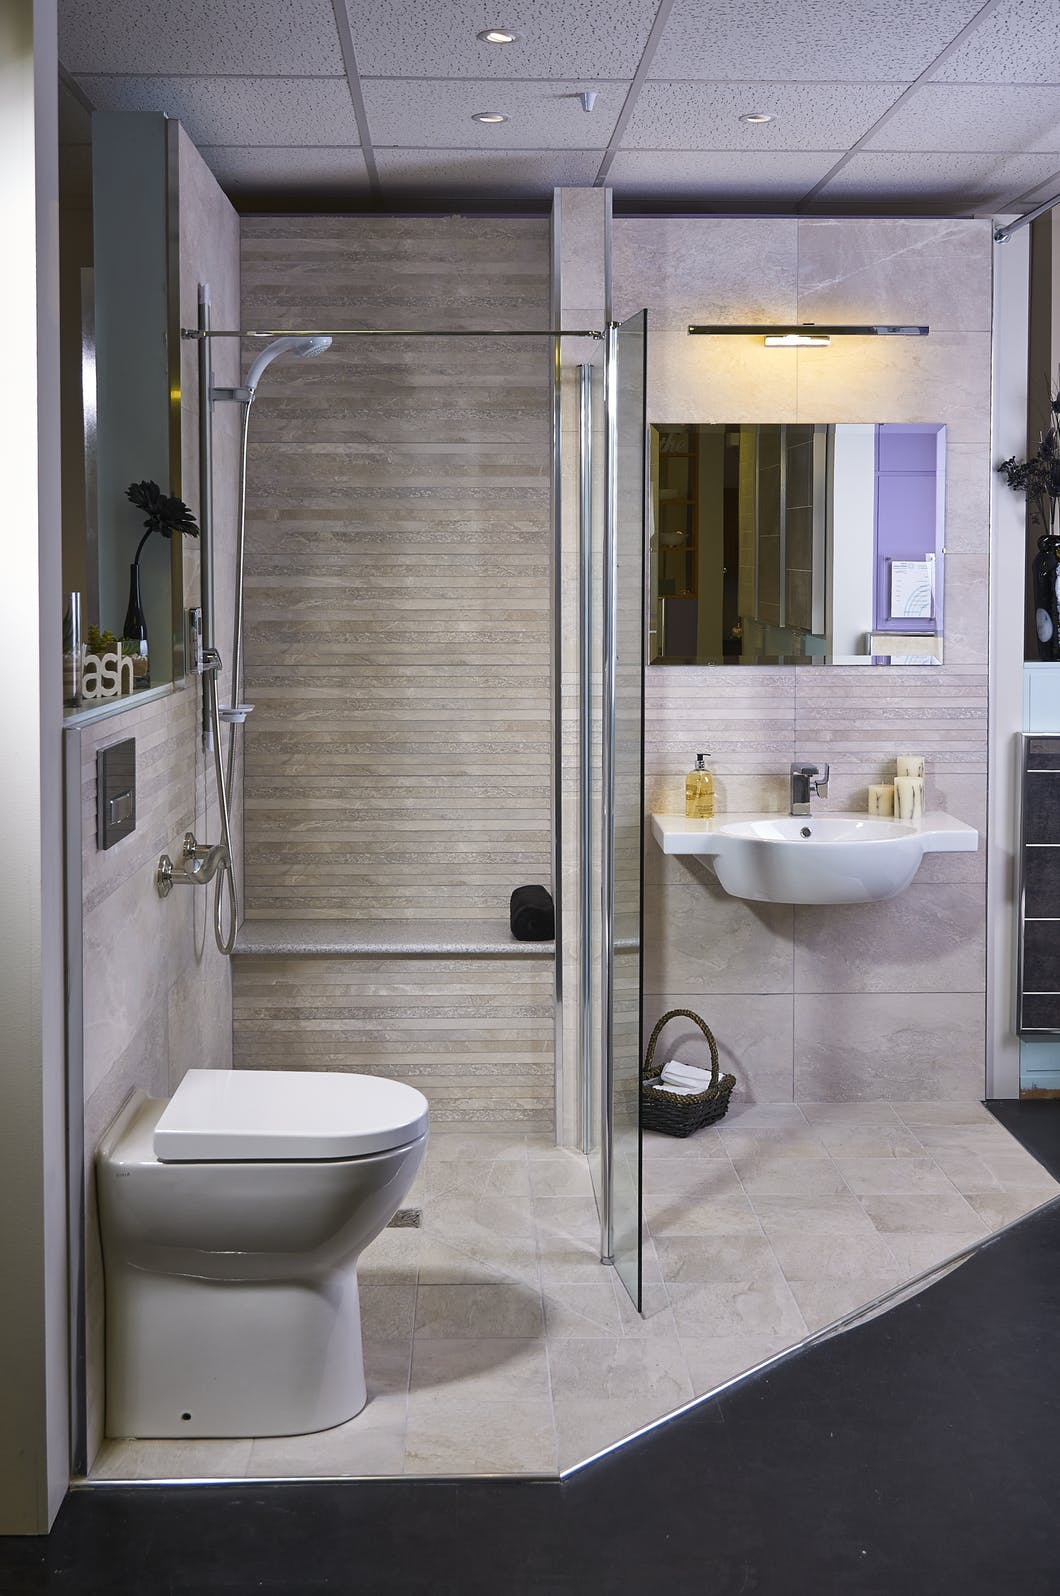 Be safe but be stylish with an accessible wet floor shower solution - visit our disabled bathroom showroom in Leeds and discover how More Ability can help you or a loved one.